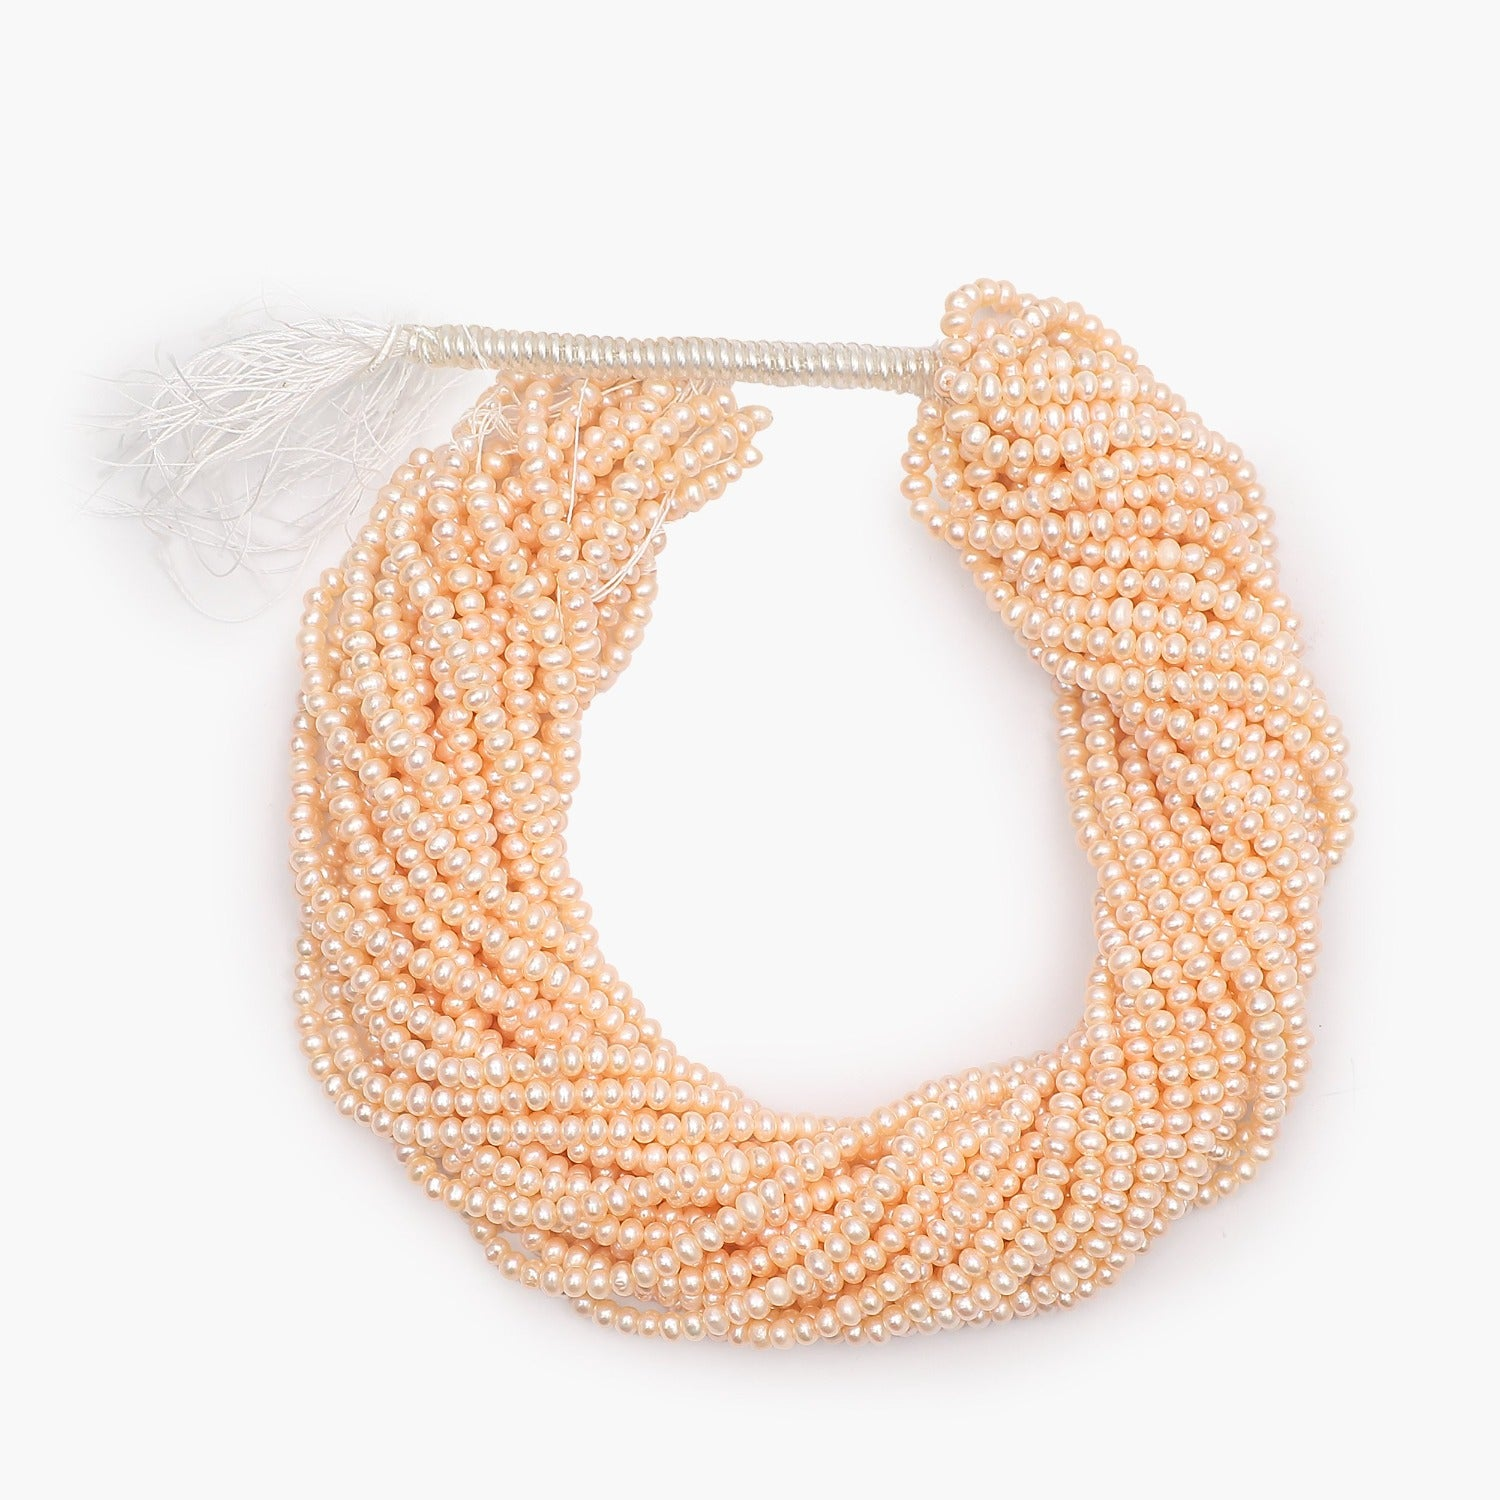 Freshwater Peach Button Pearls 4-4.5mm- Sold Per Strand